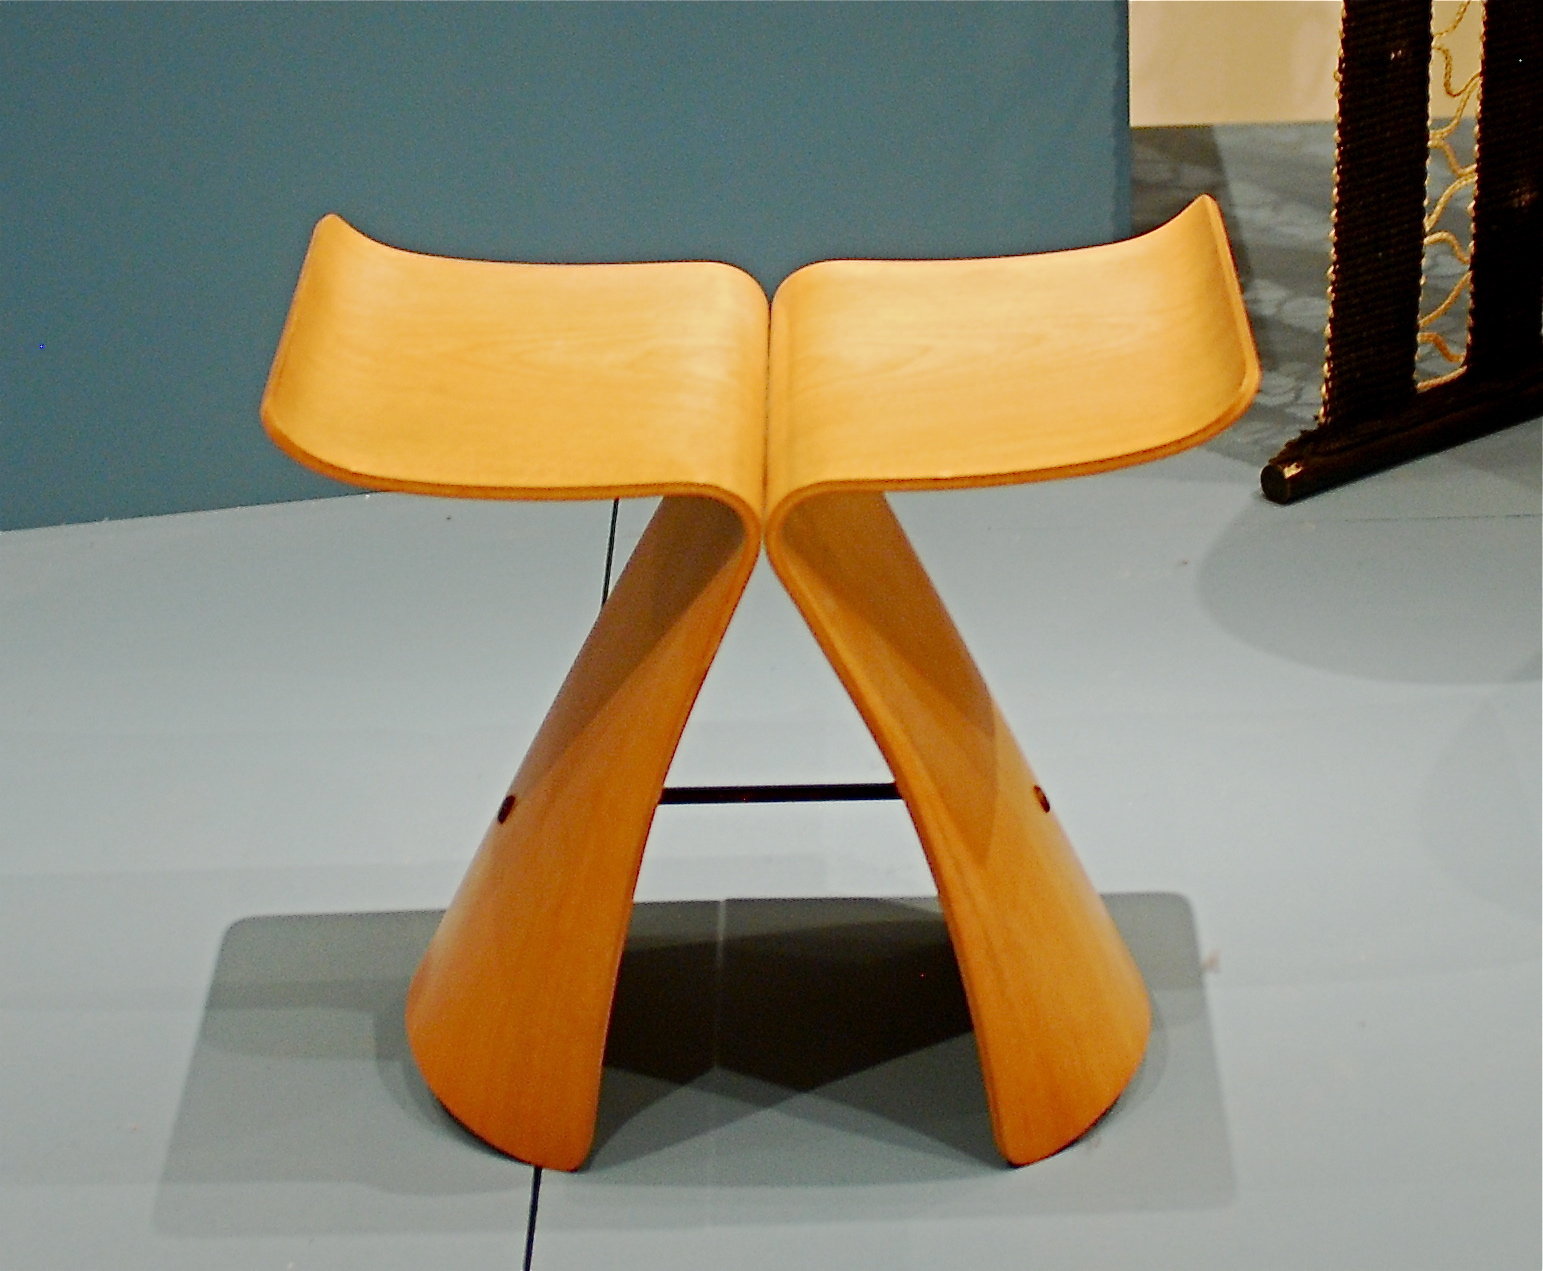 Butterfly chair sori yanagi -  Butterfly Stool 1956 By Sori Yanagi Japanese Born 1915 Molded Plywood And Metal